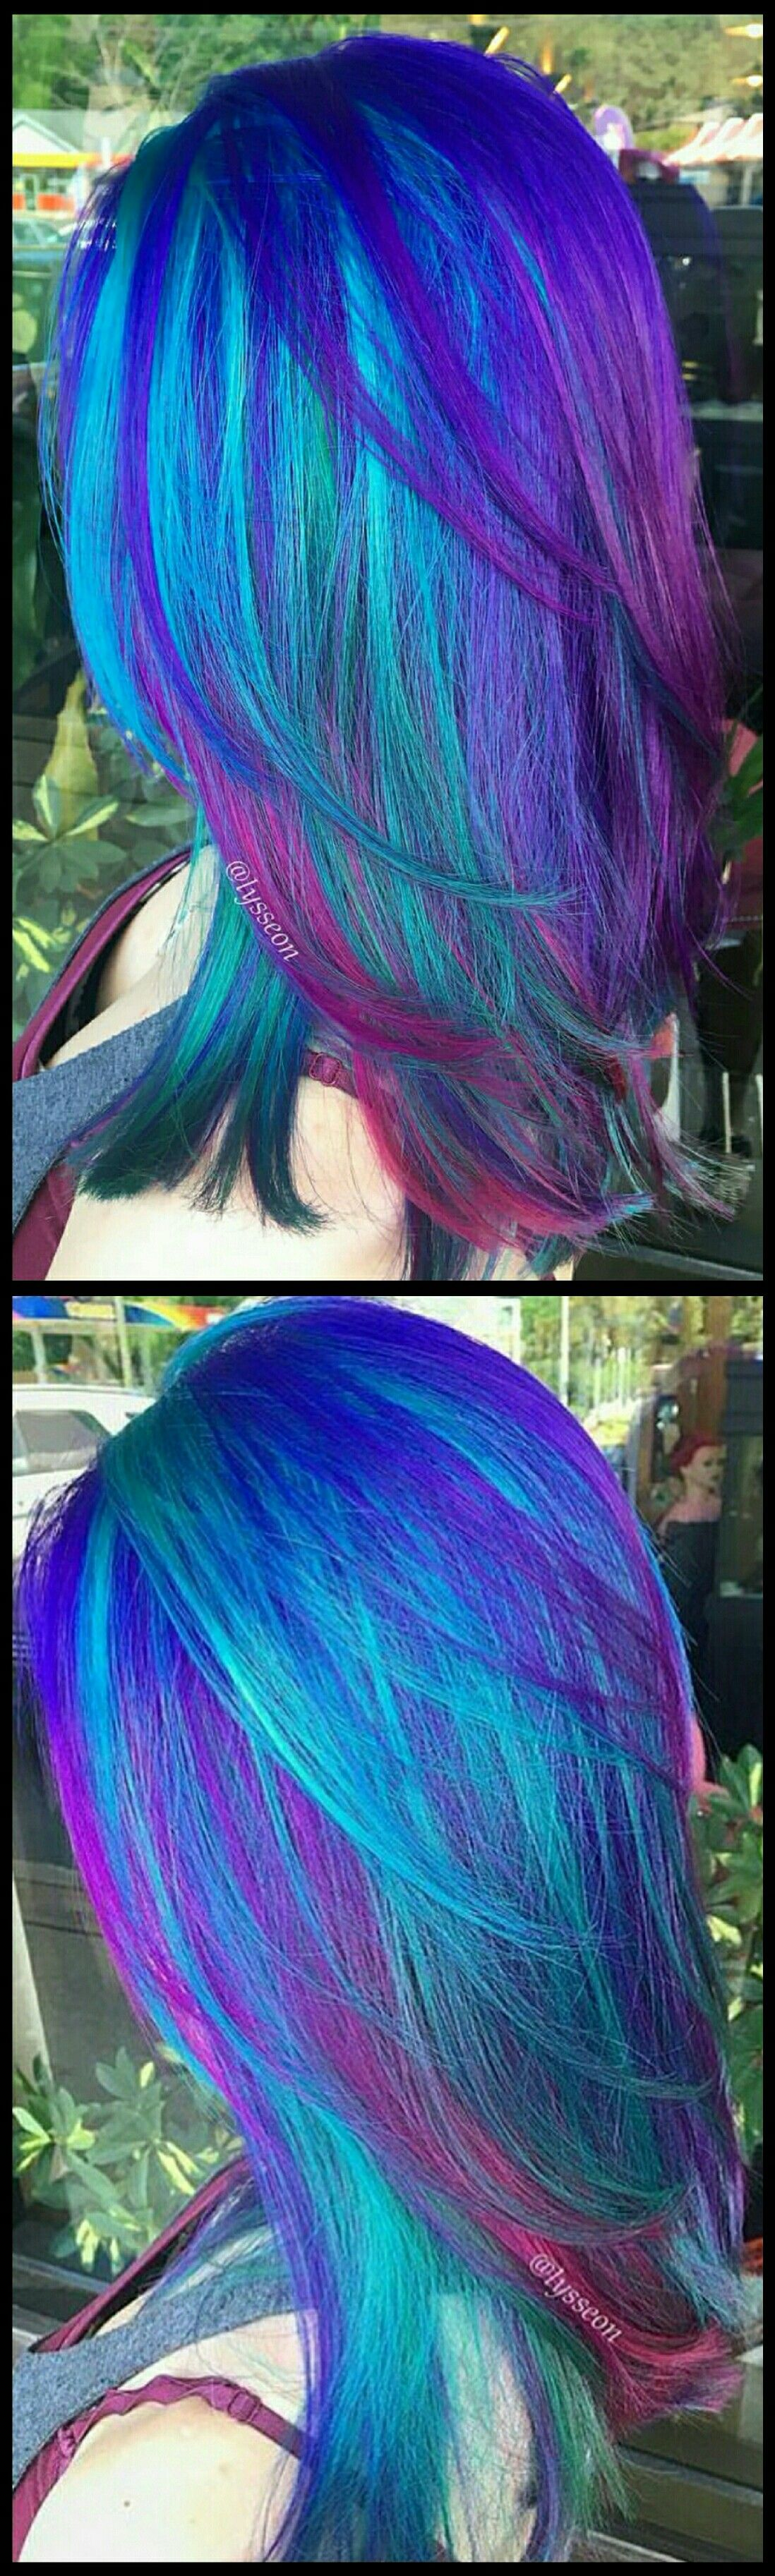 Electric blue purple dyed hair by lysseon